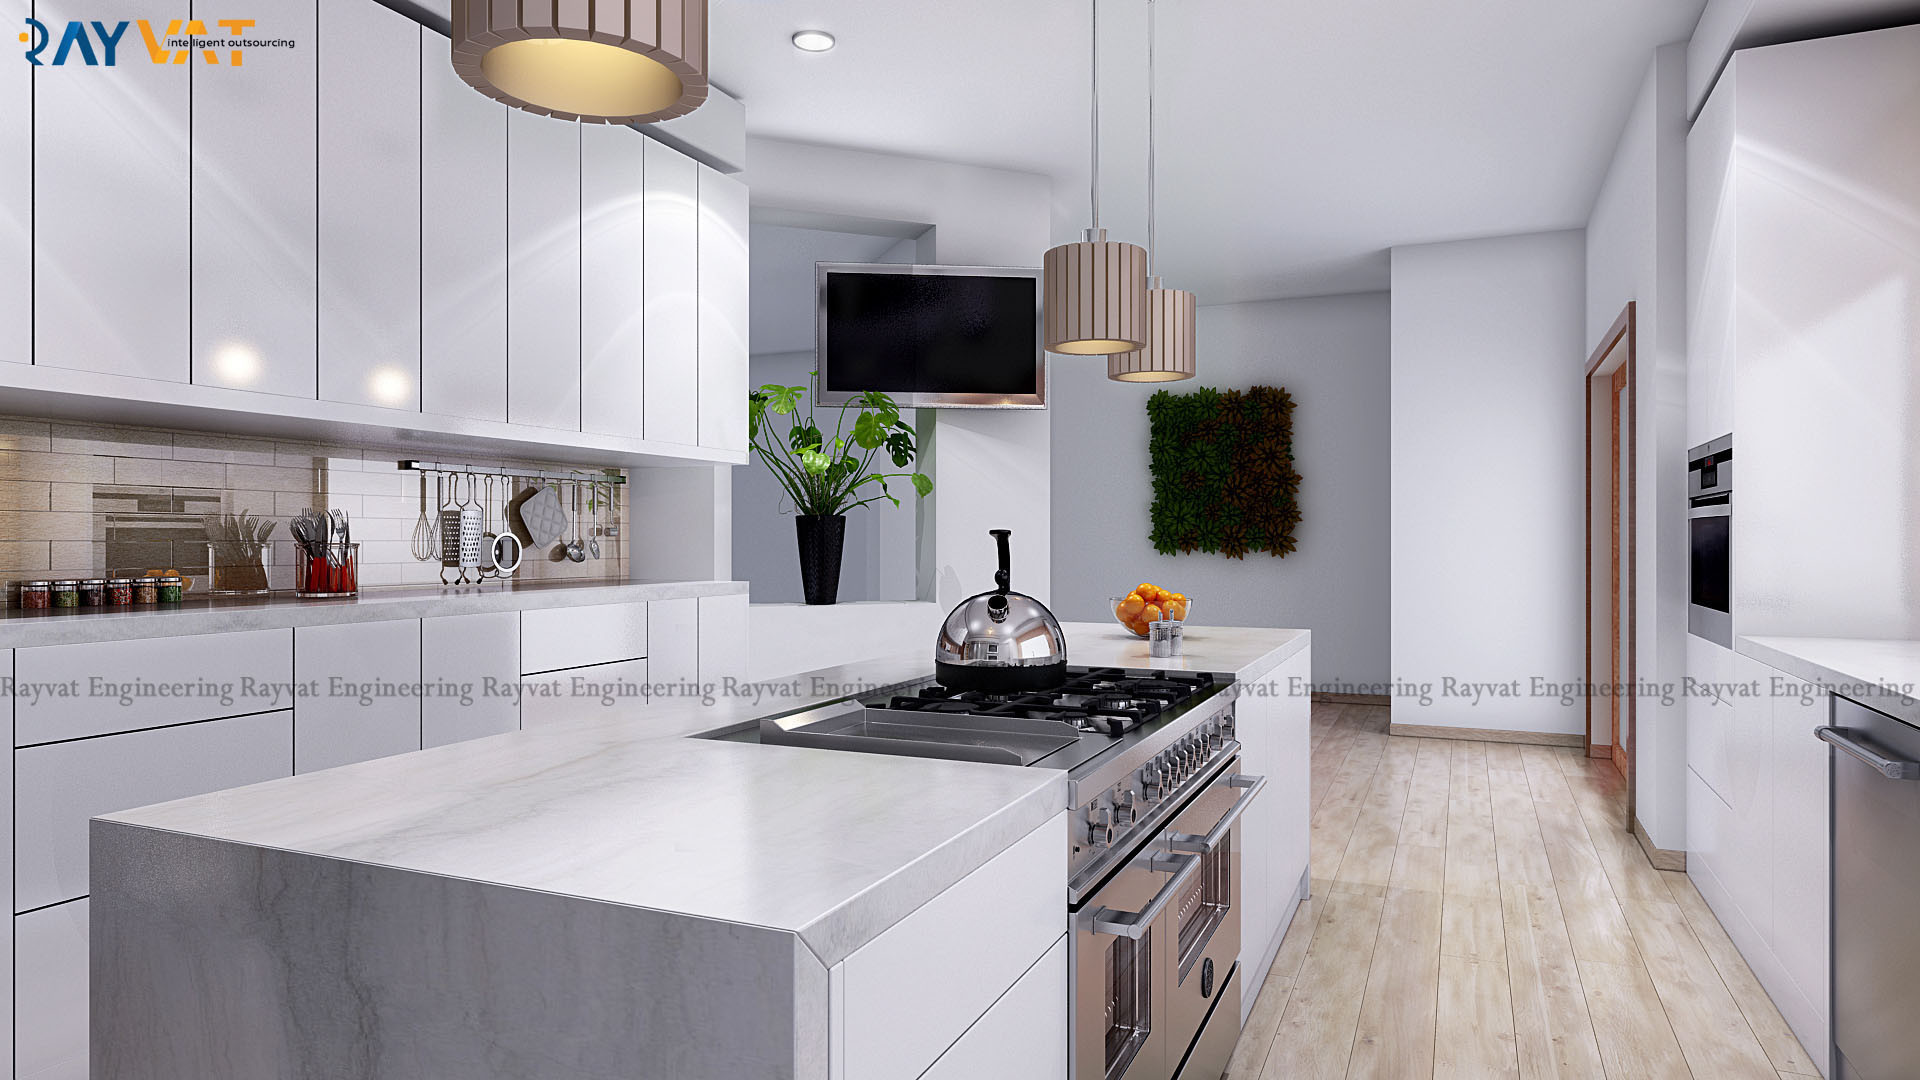 Rayvat Engineering Modern Kitchen Interior 3d Rendering